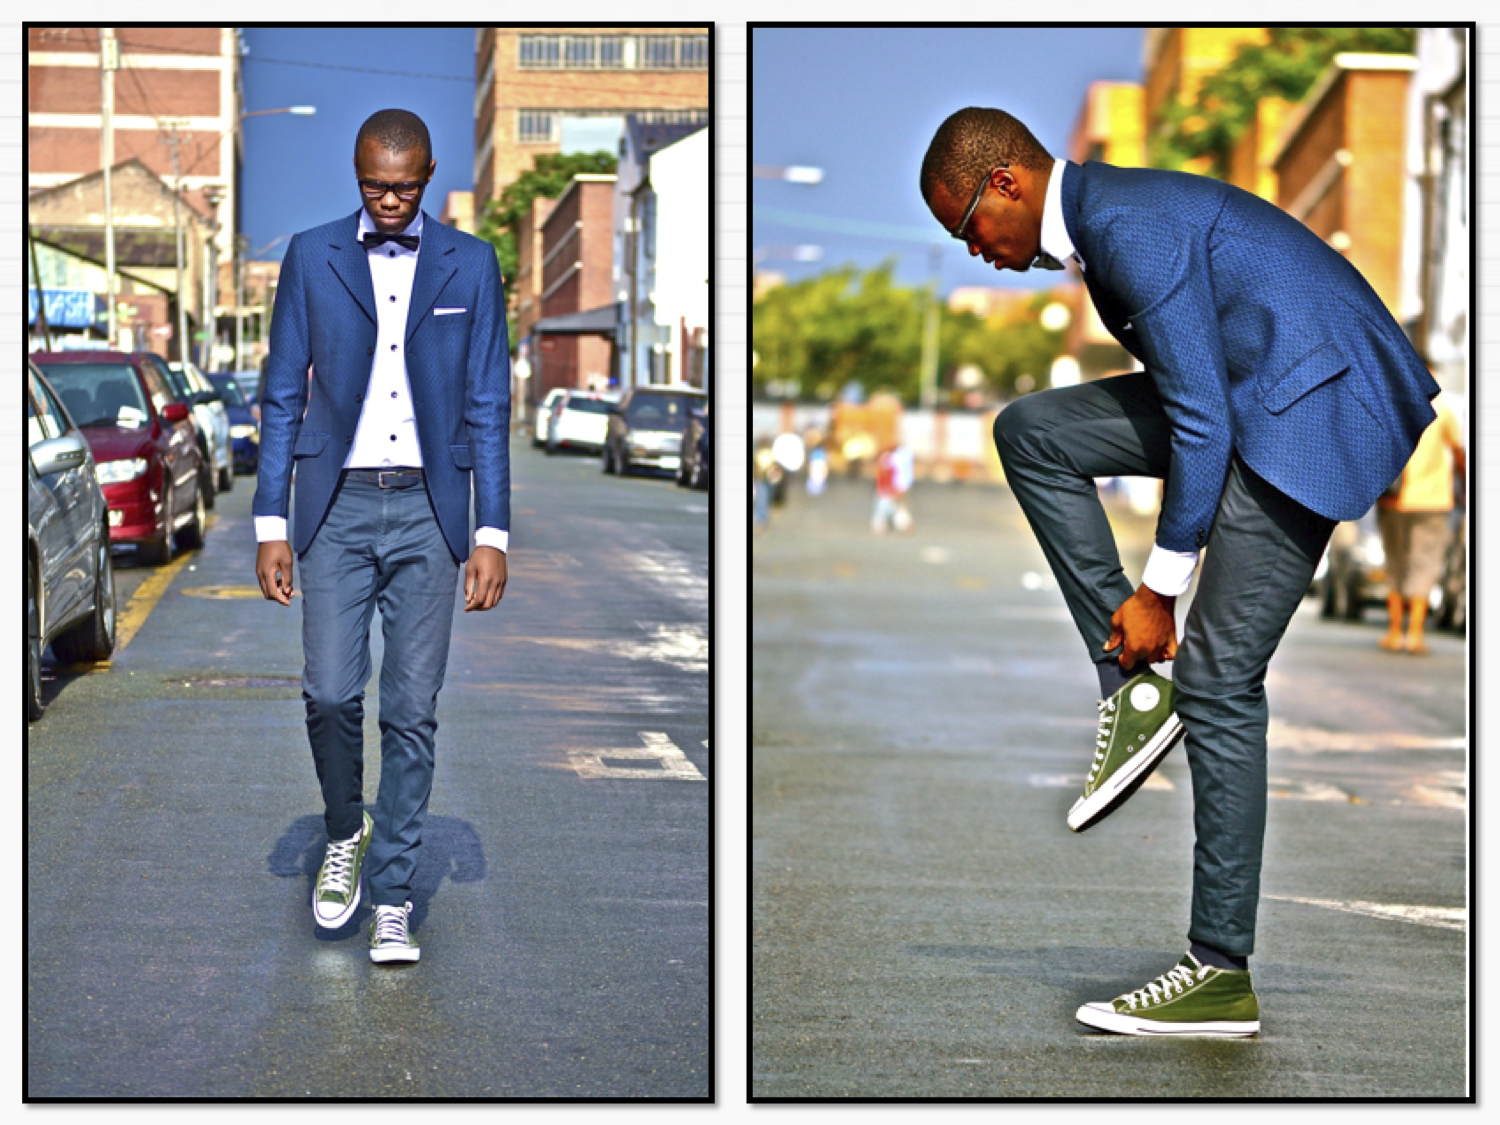 Stoned cherrie archives the style gallivanter African fashion street style